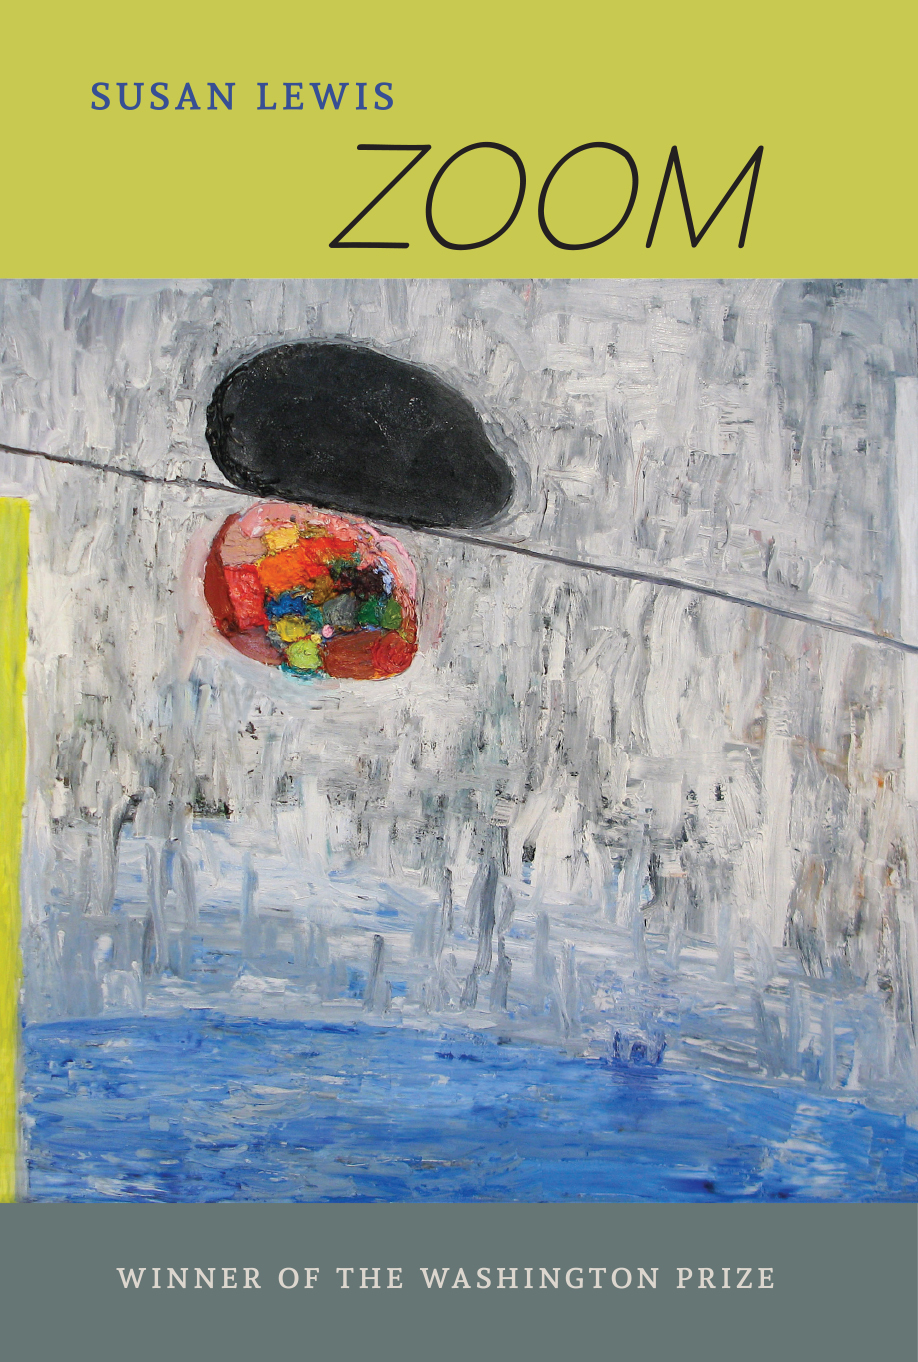 Zoom   by Susan Lewis   The Word Works , 78 pages, June 1, 2018